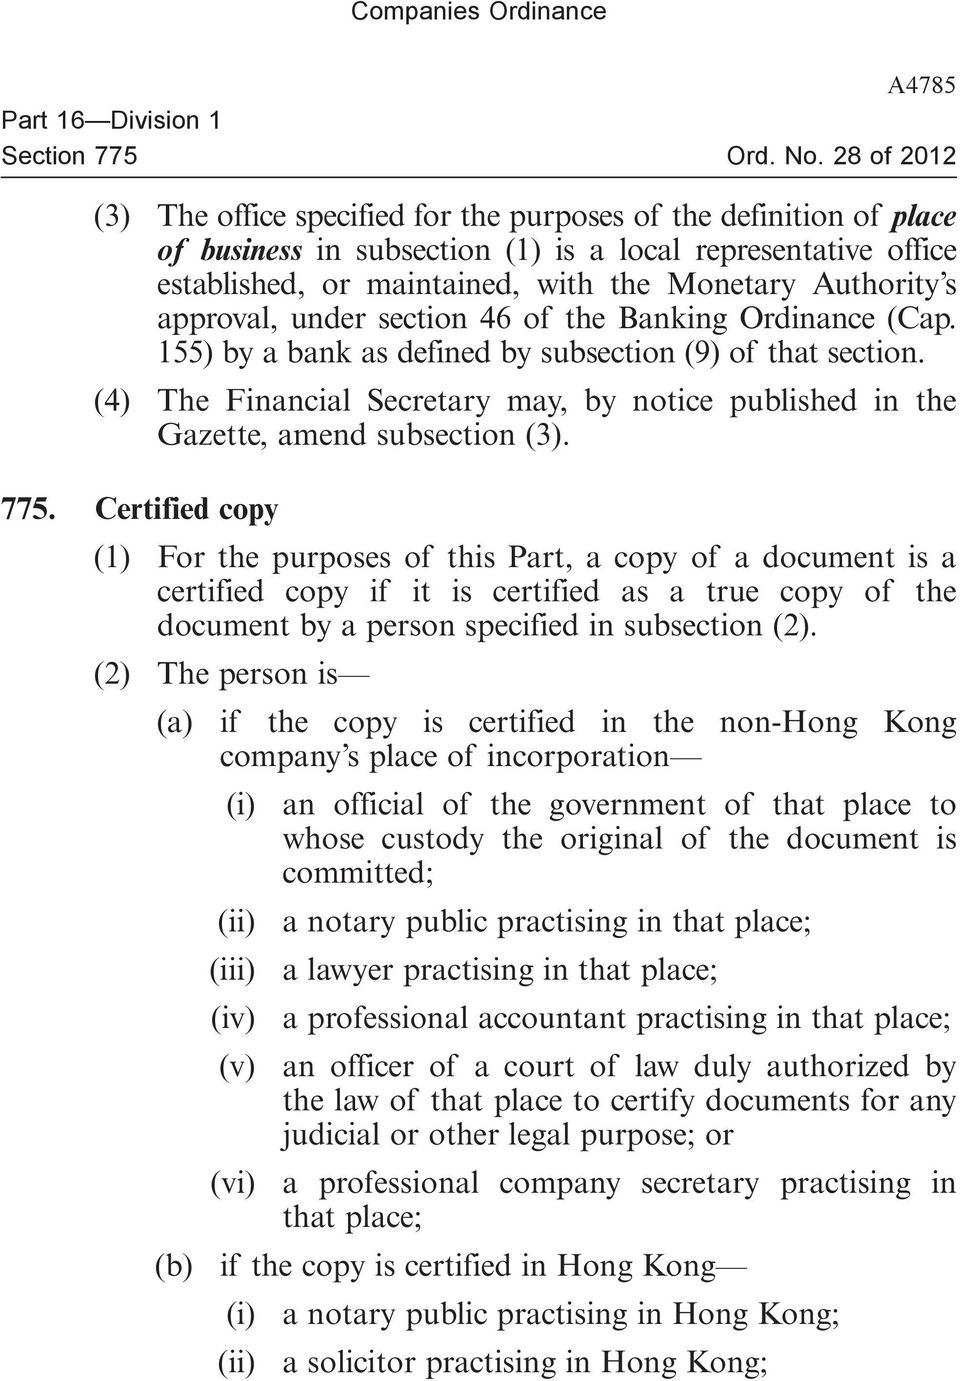 (4) The Financial Secretary may, by notice published in the Gazette, amend subsection (3). 775.